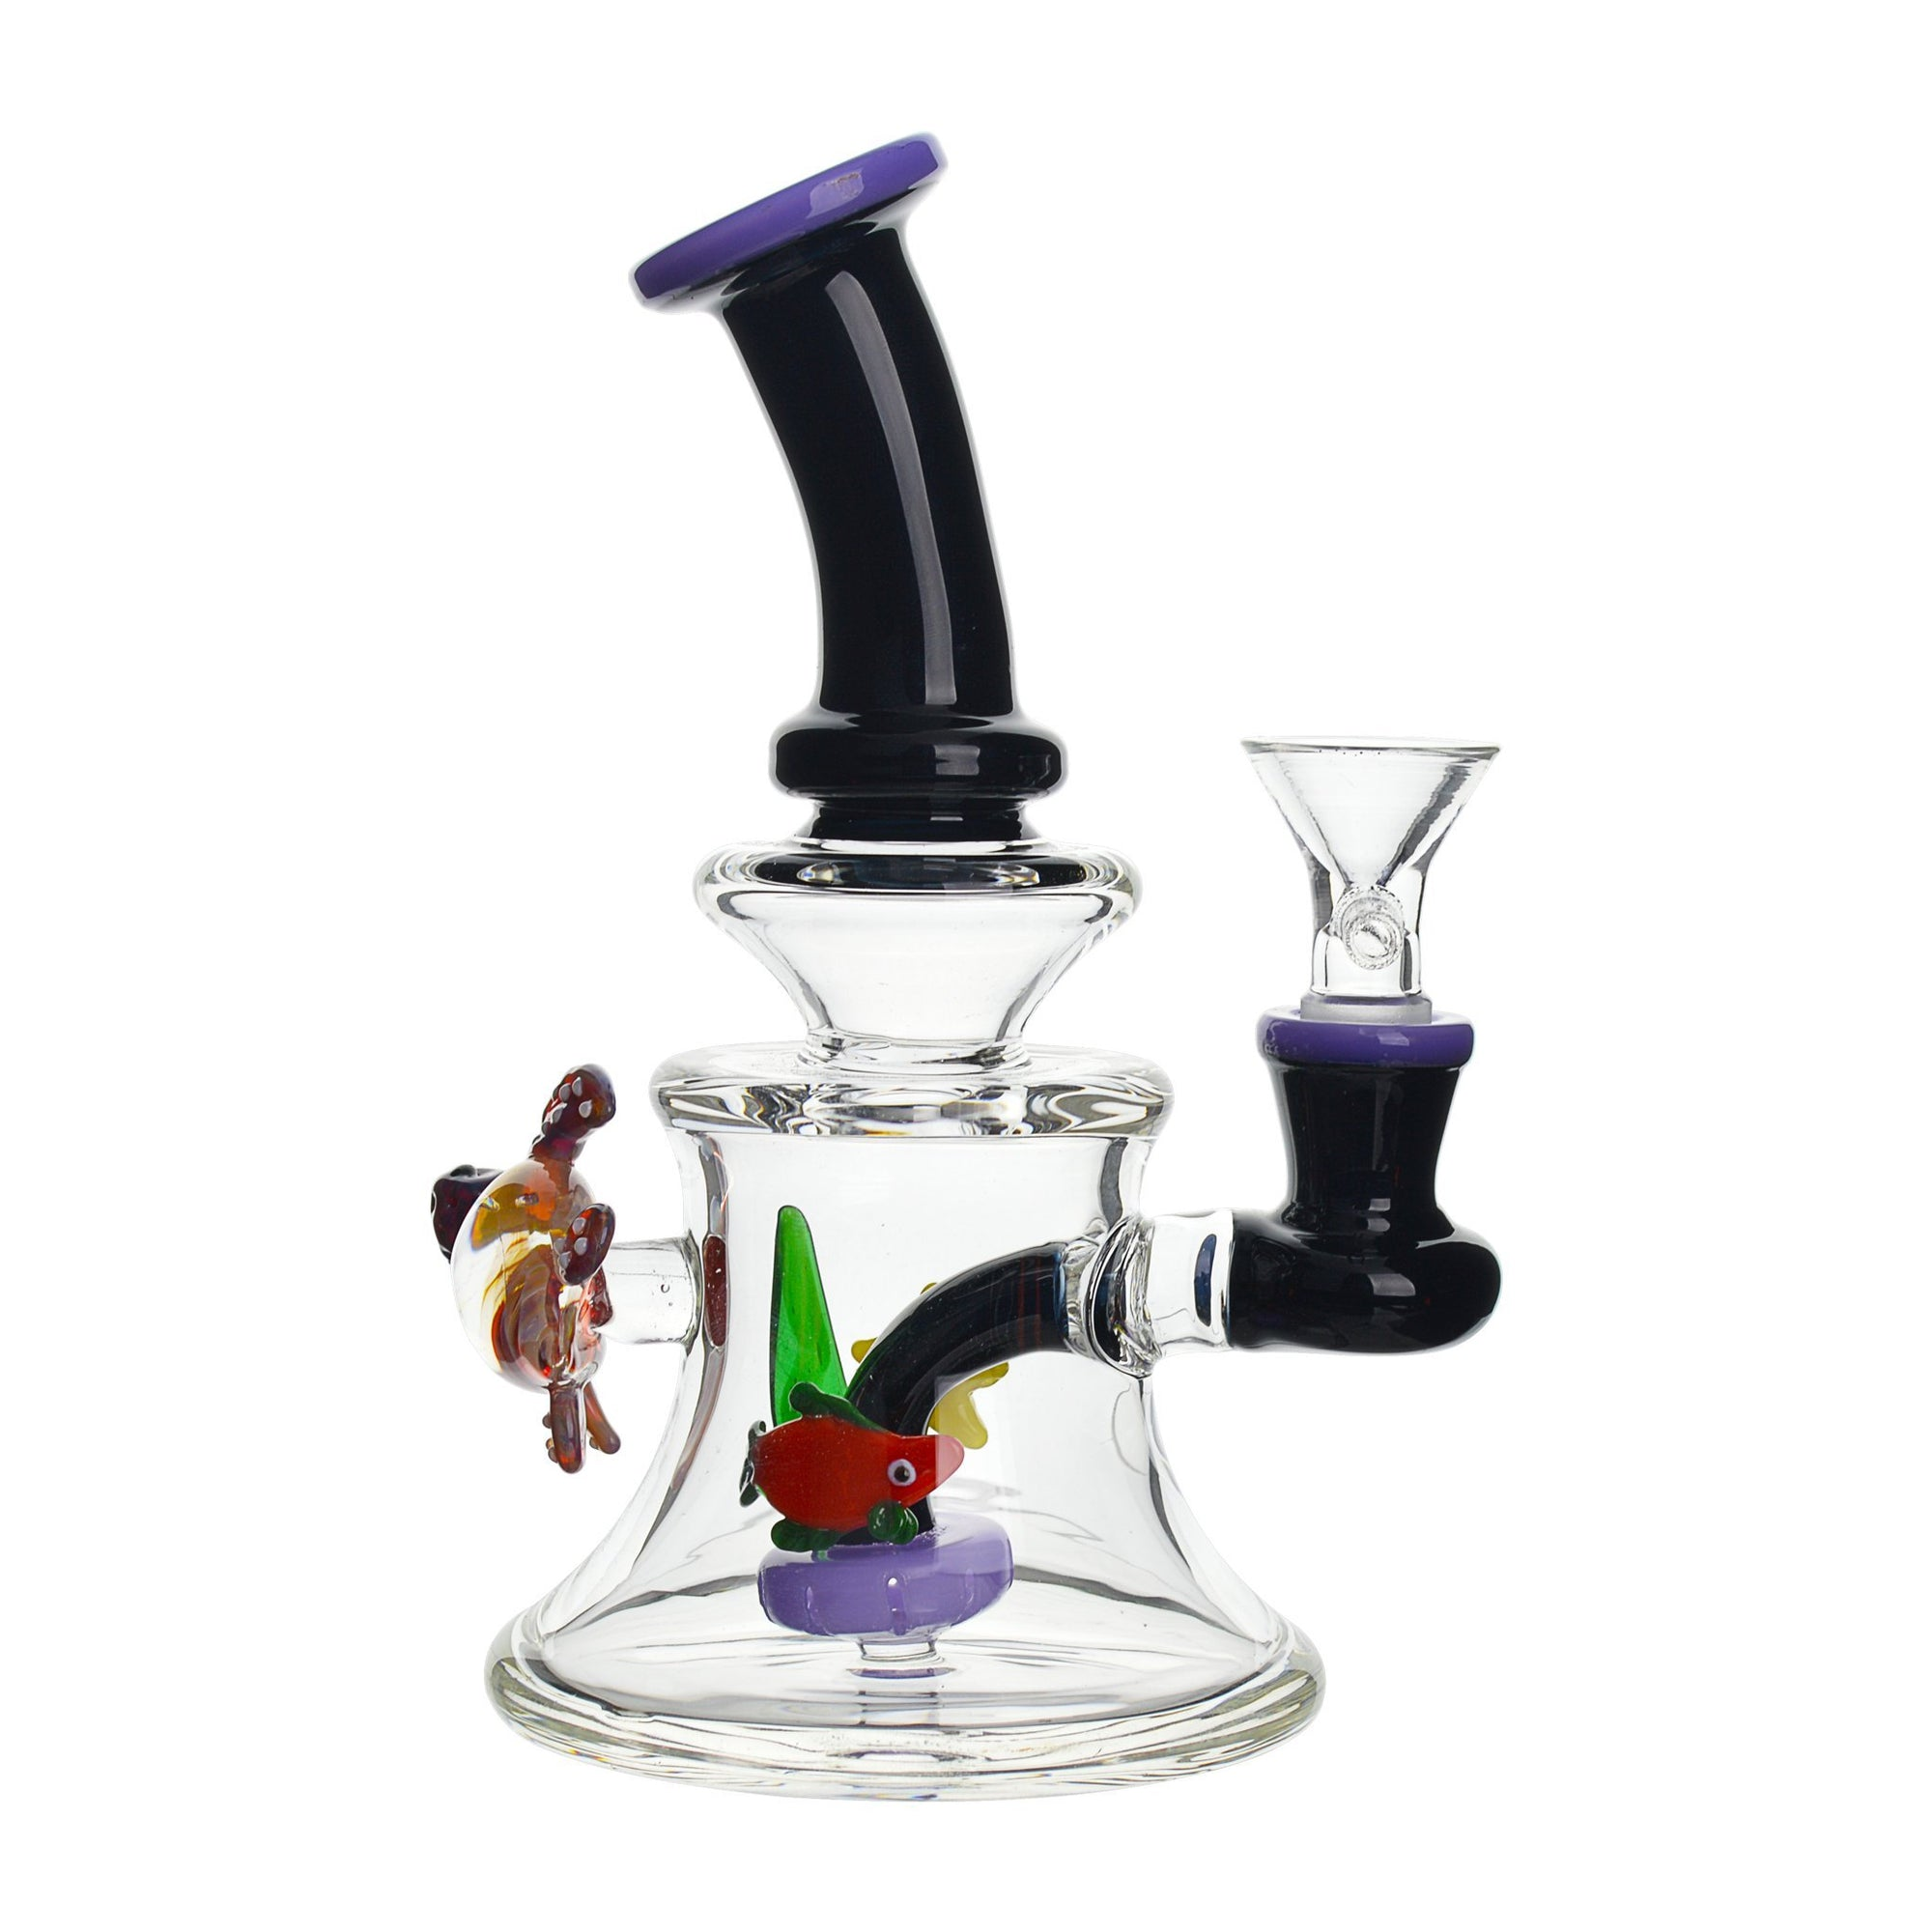 7-inch clear glass bong smoking device built-in ash catcher colorful fish 2 turtle figures inside an aquarium look